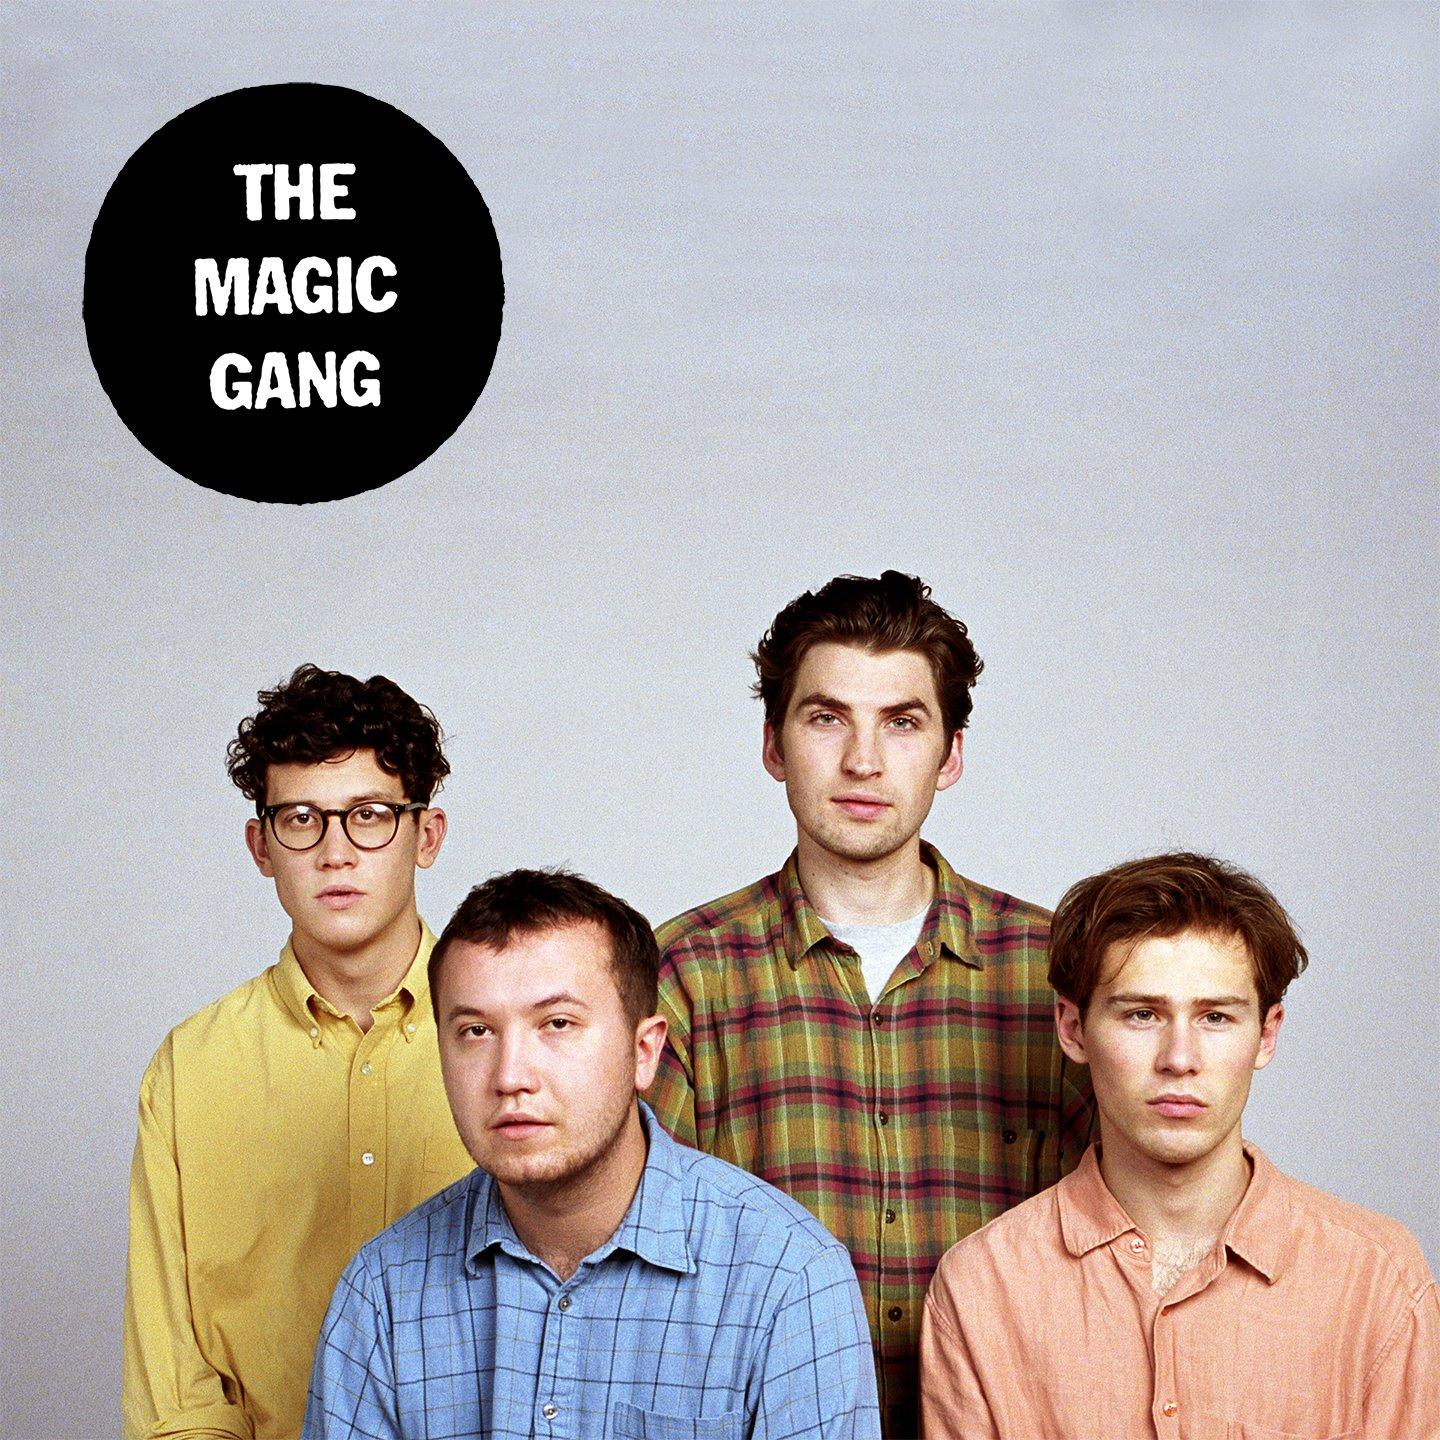 The Magic Gang - The Magic Gang